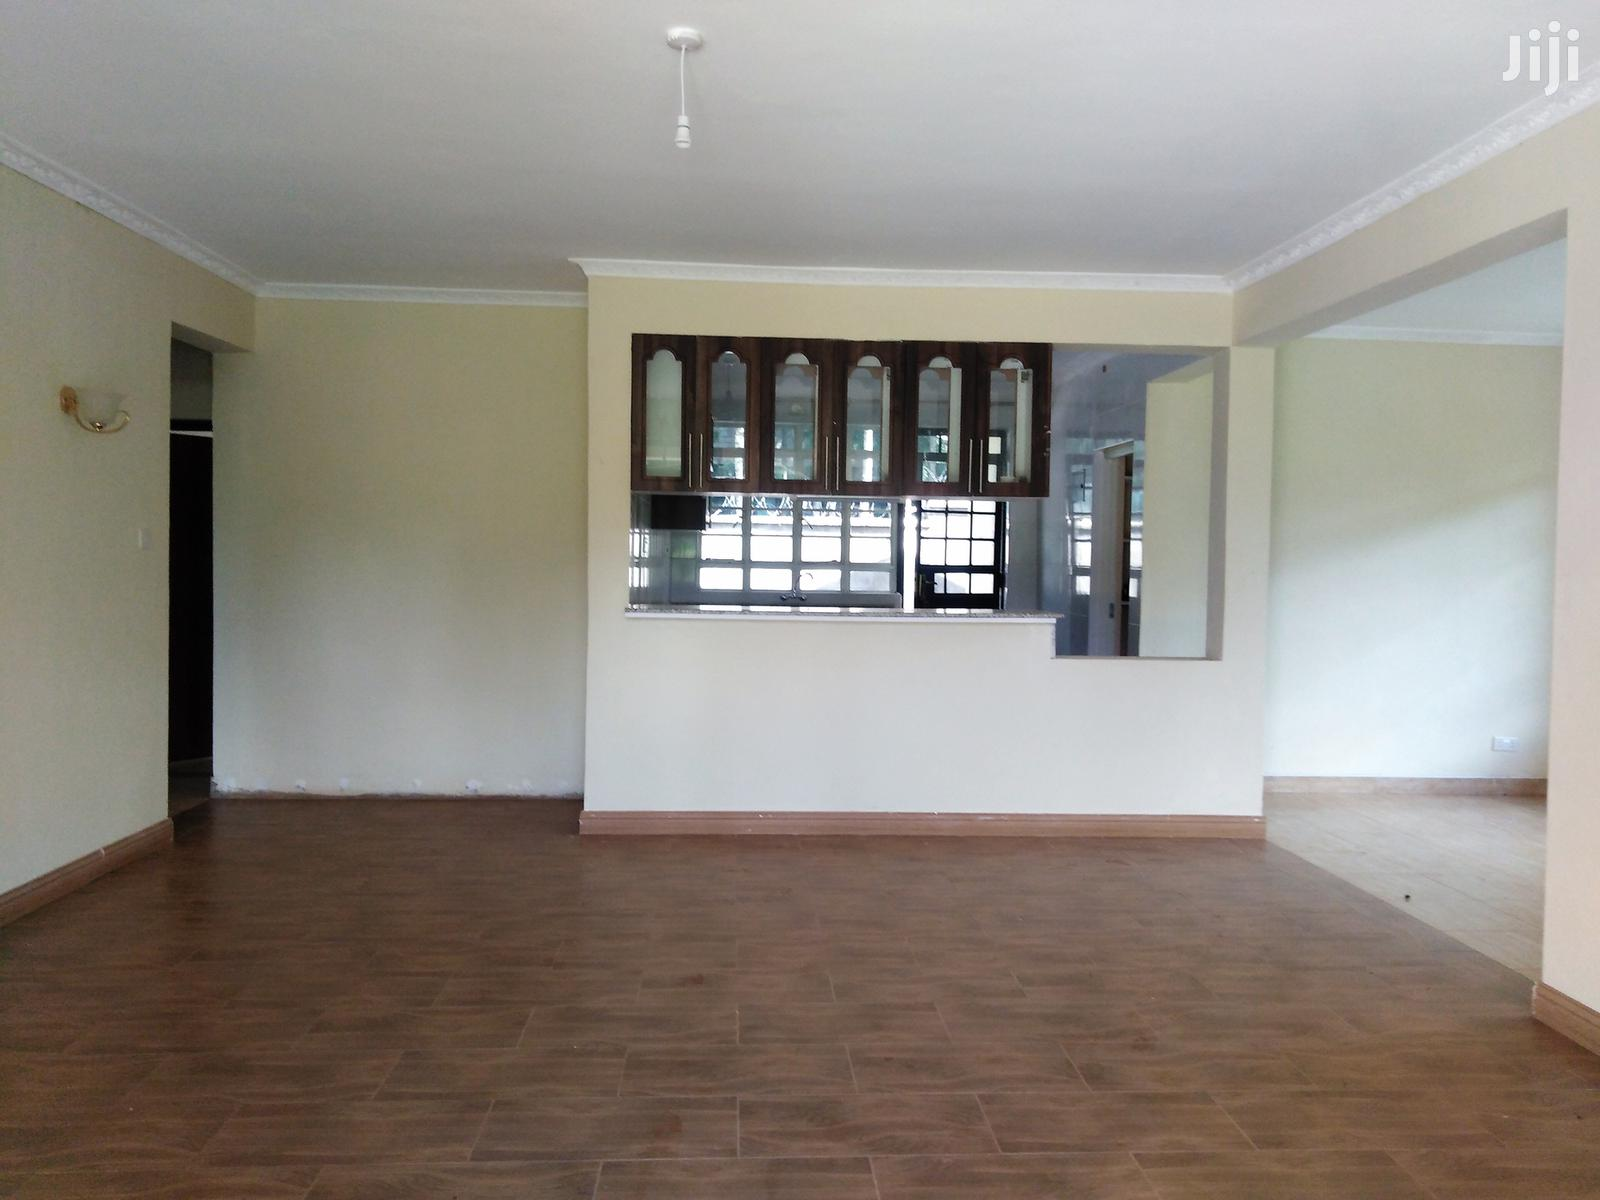 Three Bedrooms Bungalow On Sale At The Foot Of Ngong Hills